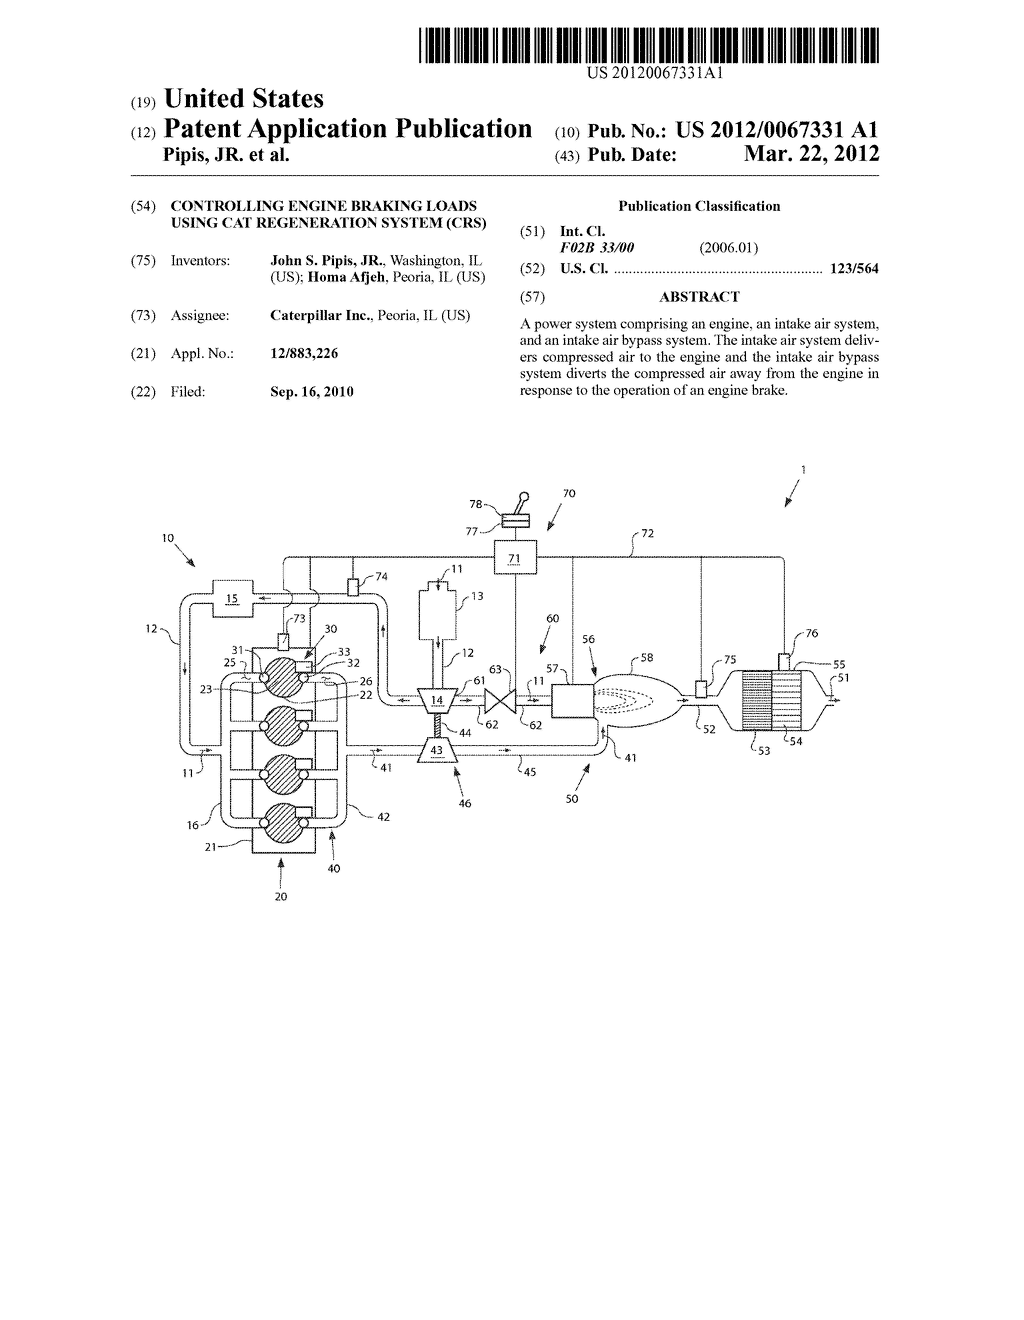 Controlling engine braking loads using cat regeneration system (CRS) -  diagram, schematic, and image 01